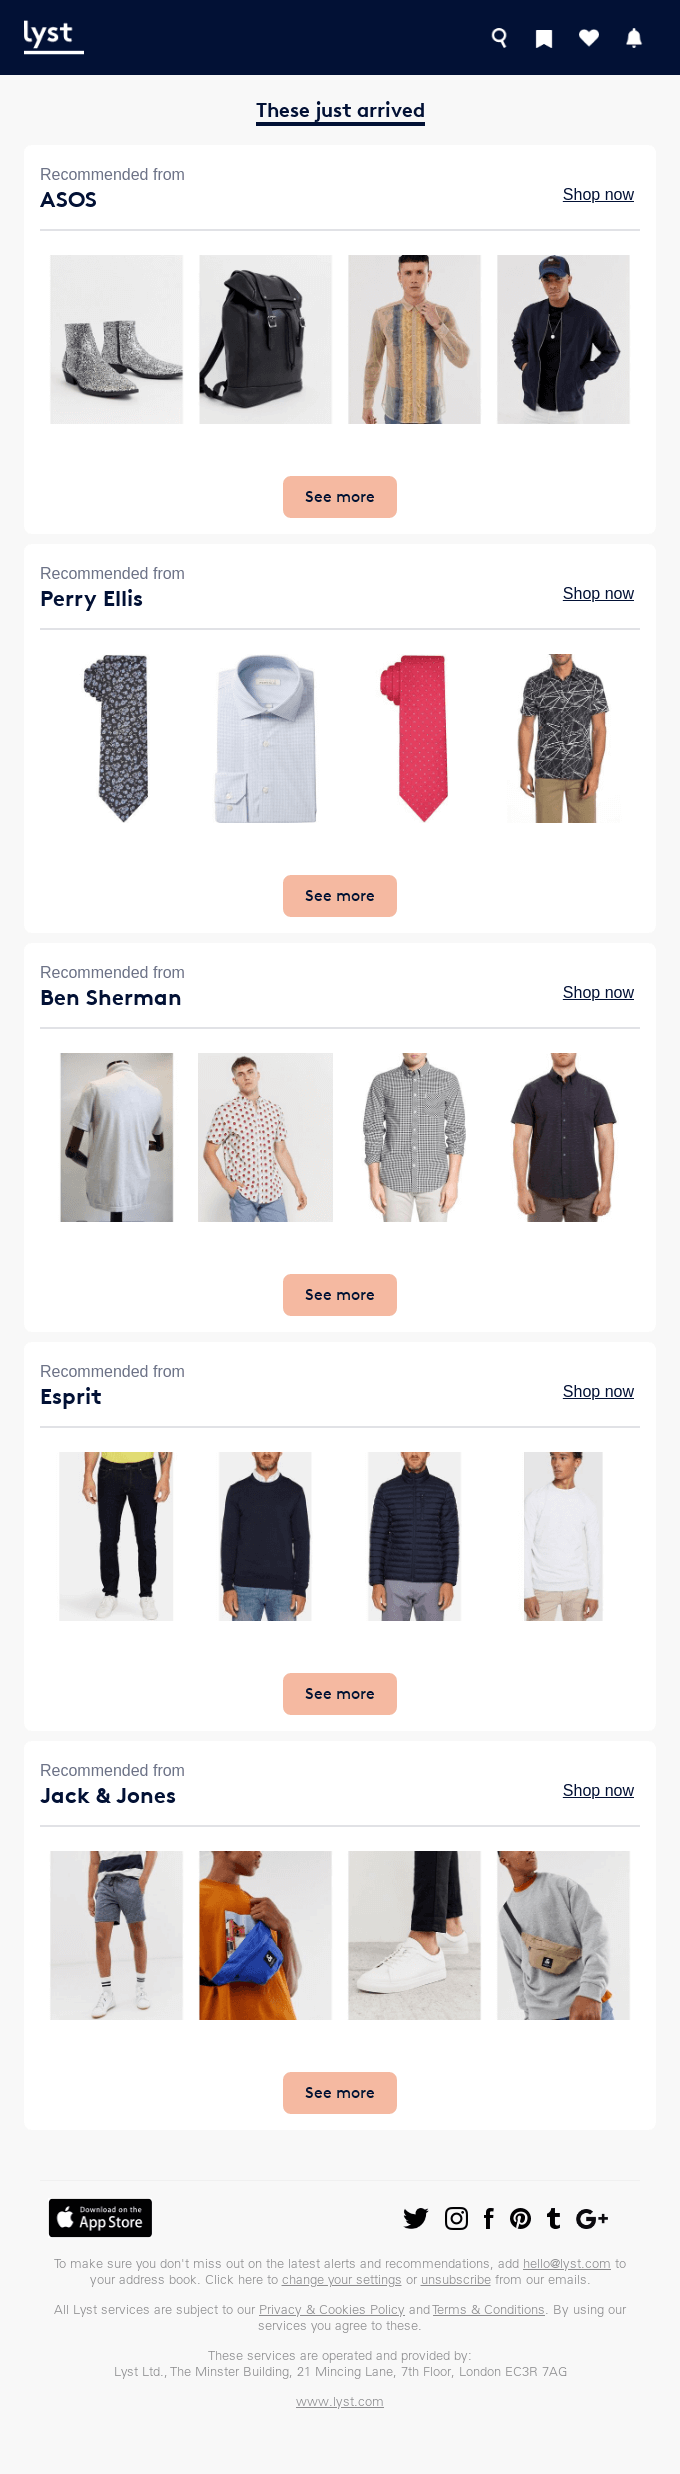 Retail email screenshot with fashion product recommendations.